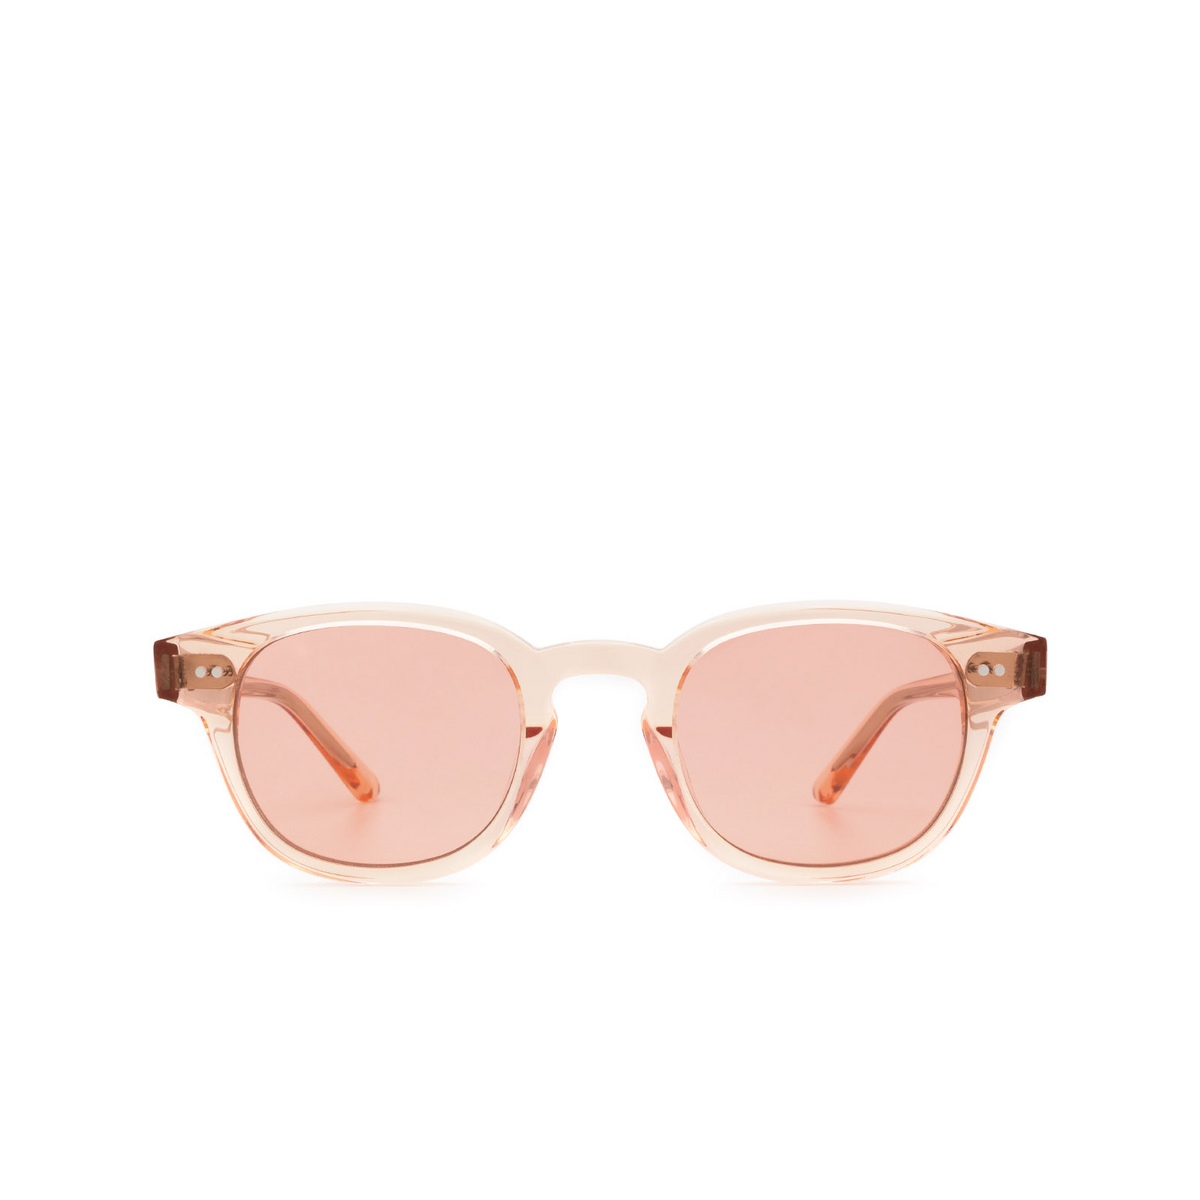 Chimi® Square Sunglasses: 01 color Pink - front view.